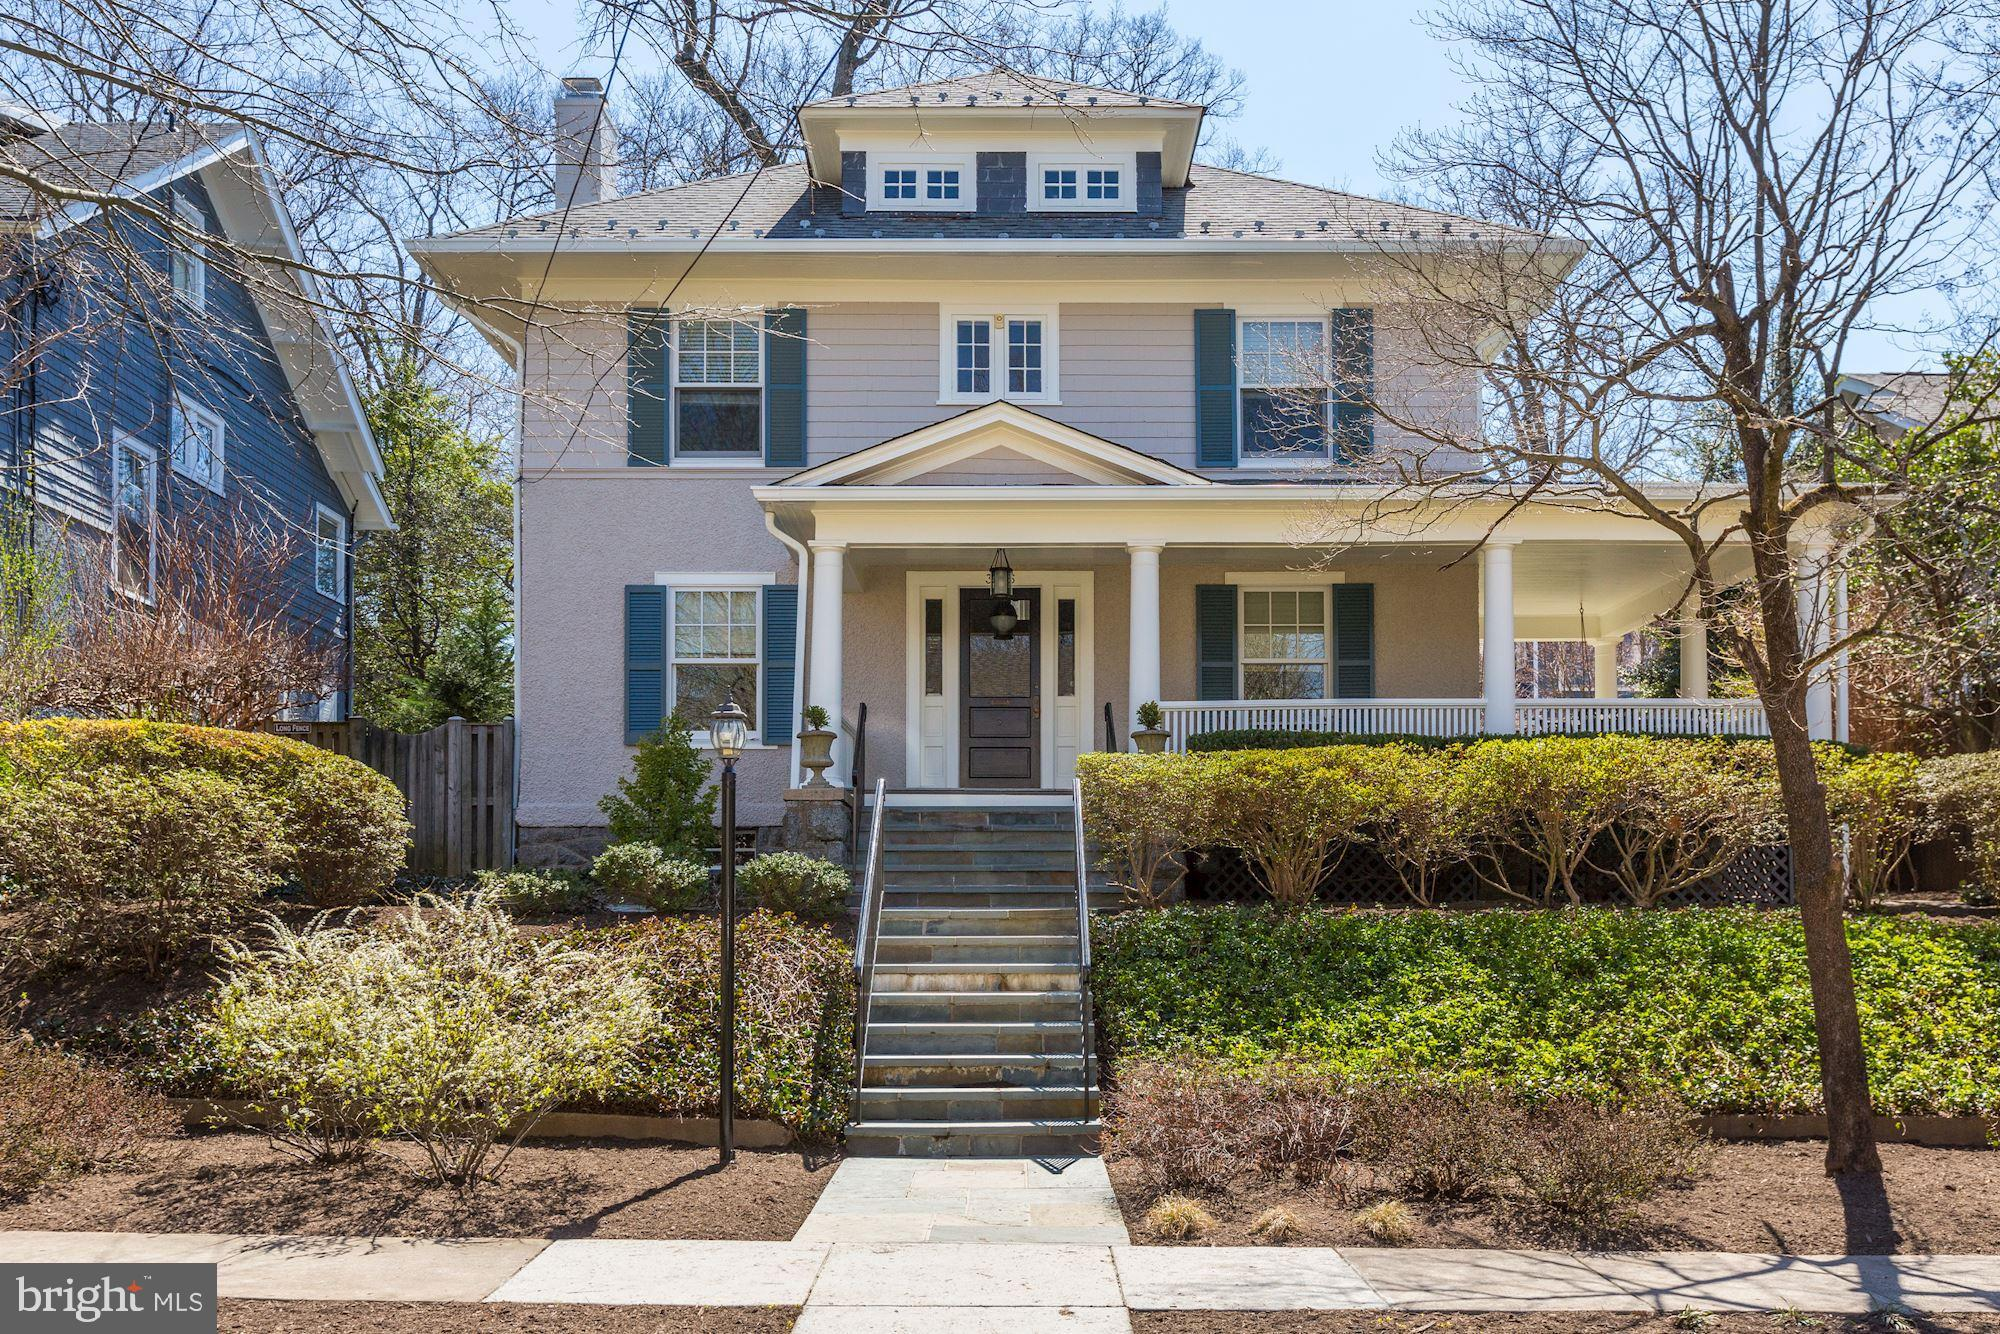 3906 INGOMAR STREET NW, WASHINGTON, DC 20015